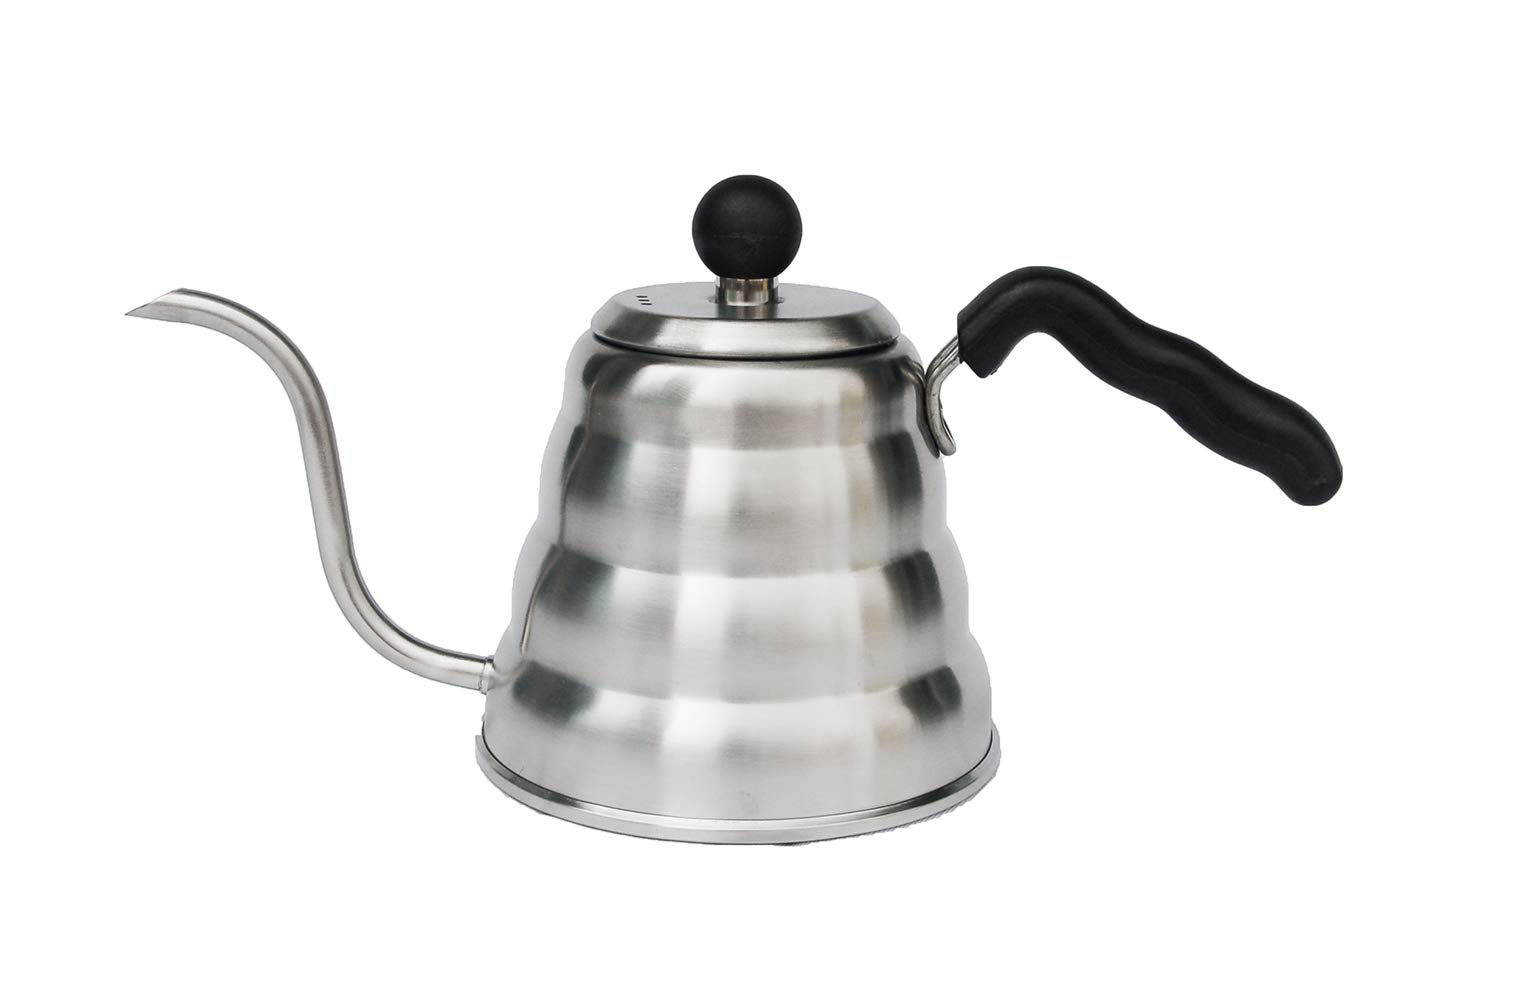 Mixpresso Gooseneck Pour Over Coffee Kettle | Barista Pour Control Design| Ideal for Coffee and Tea | High-Grade Stainless Steel I 1.2 Liter (40 OZ) I For Drip Coffee I Induction Cooker I Stove Top